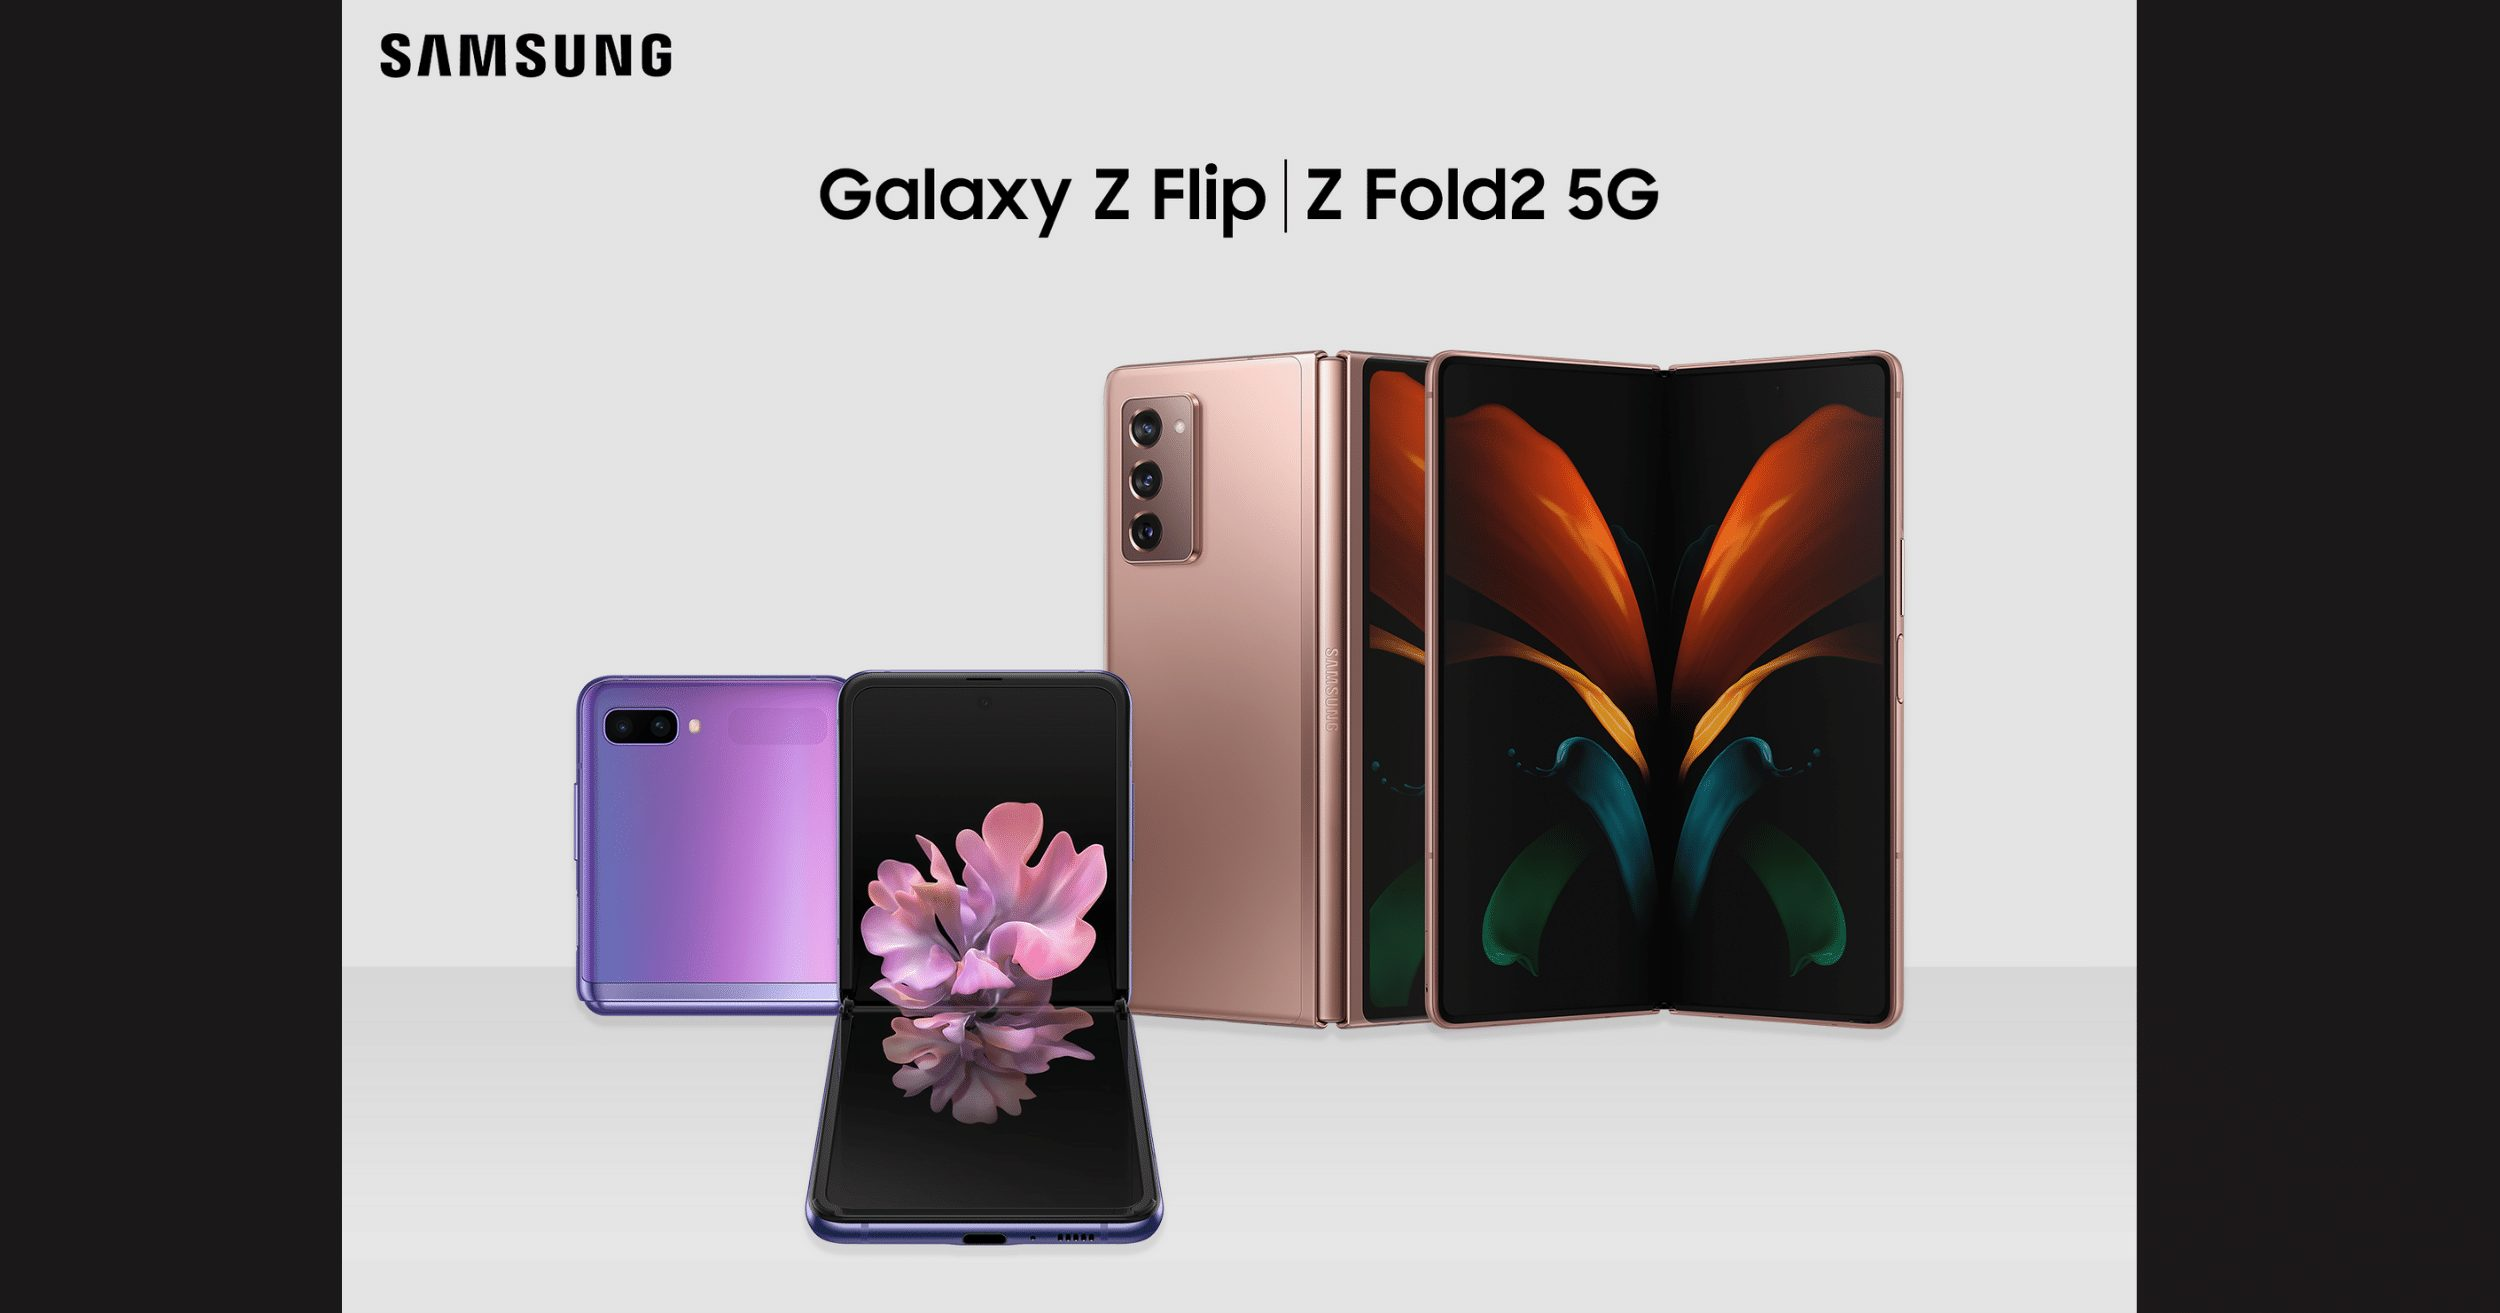 get-a-samsung-galaxy-z-fold2-5g-z-flip-for-as-low-as-p2124-58-month